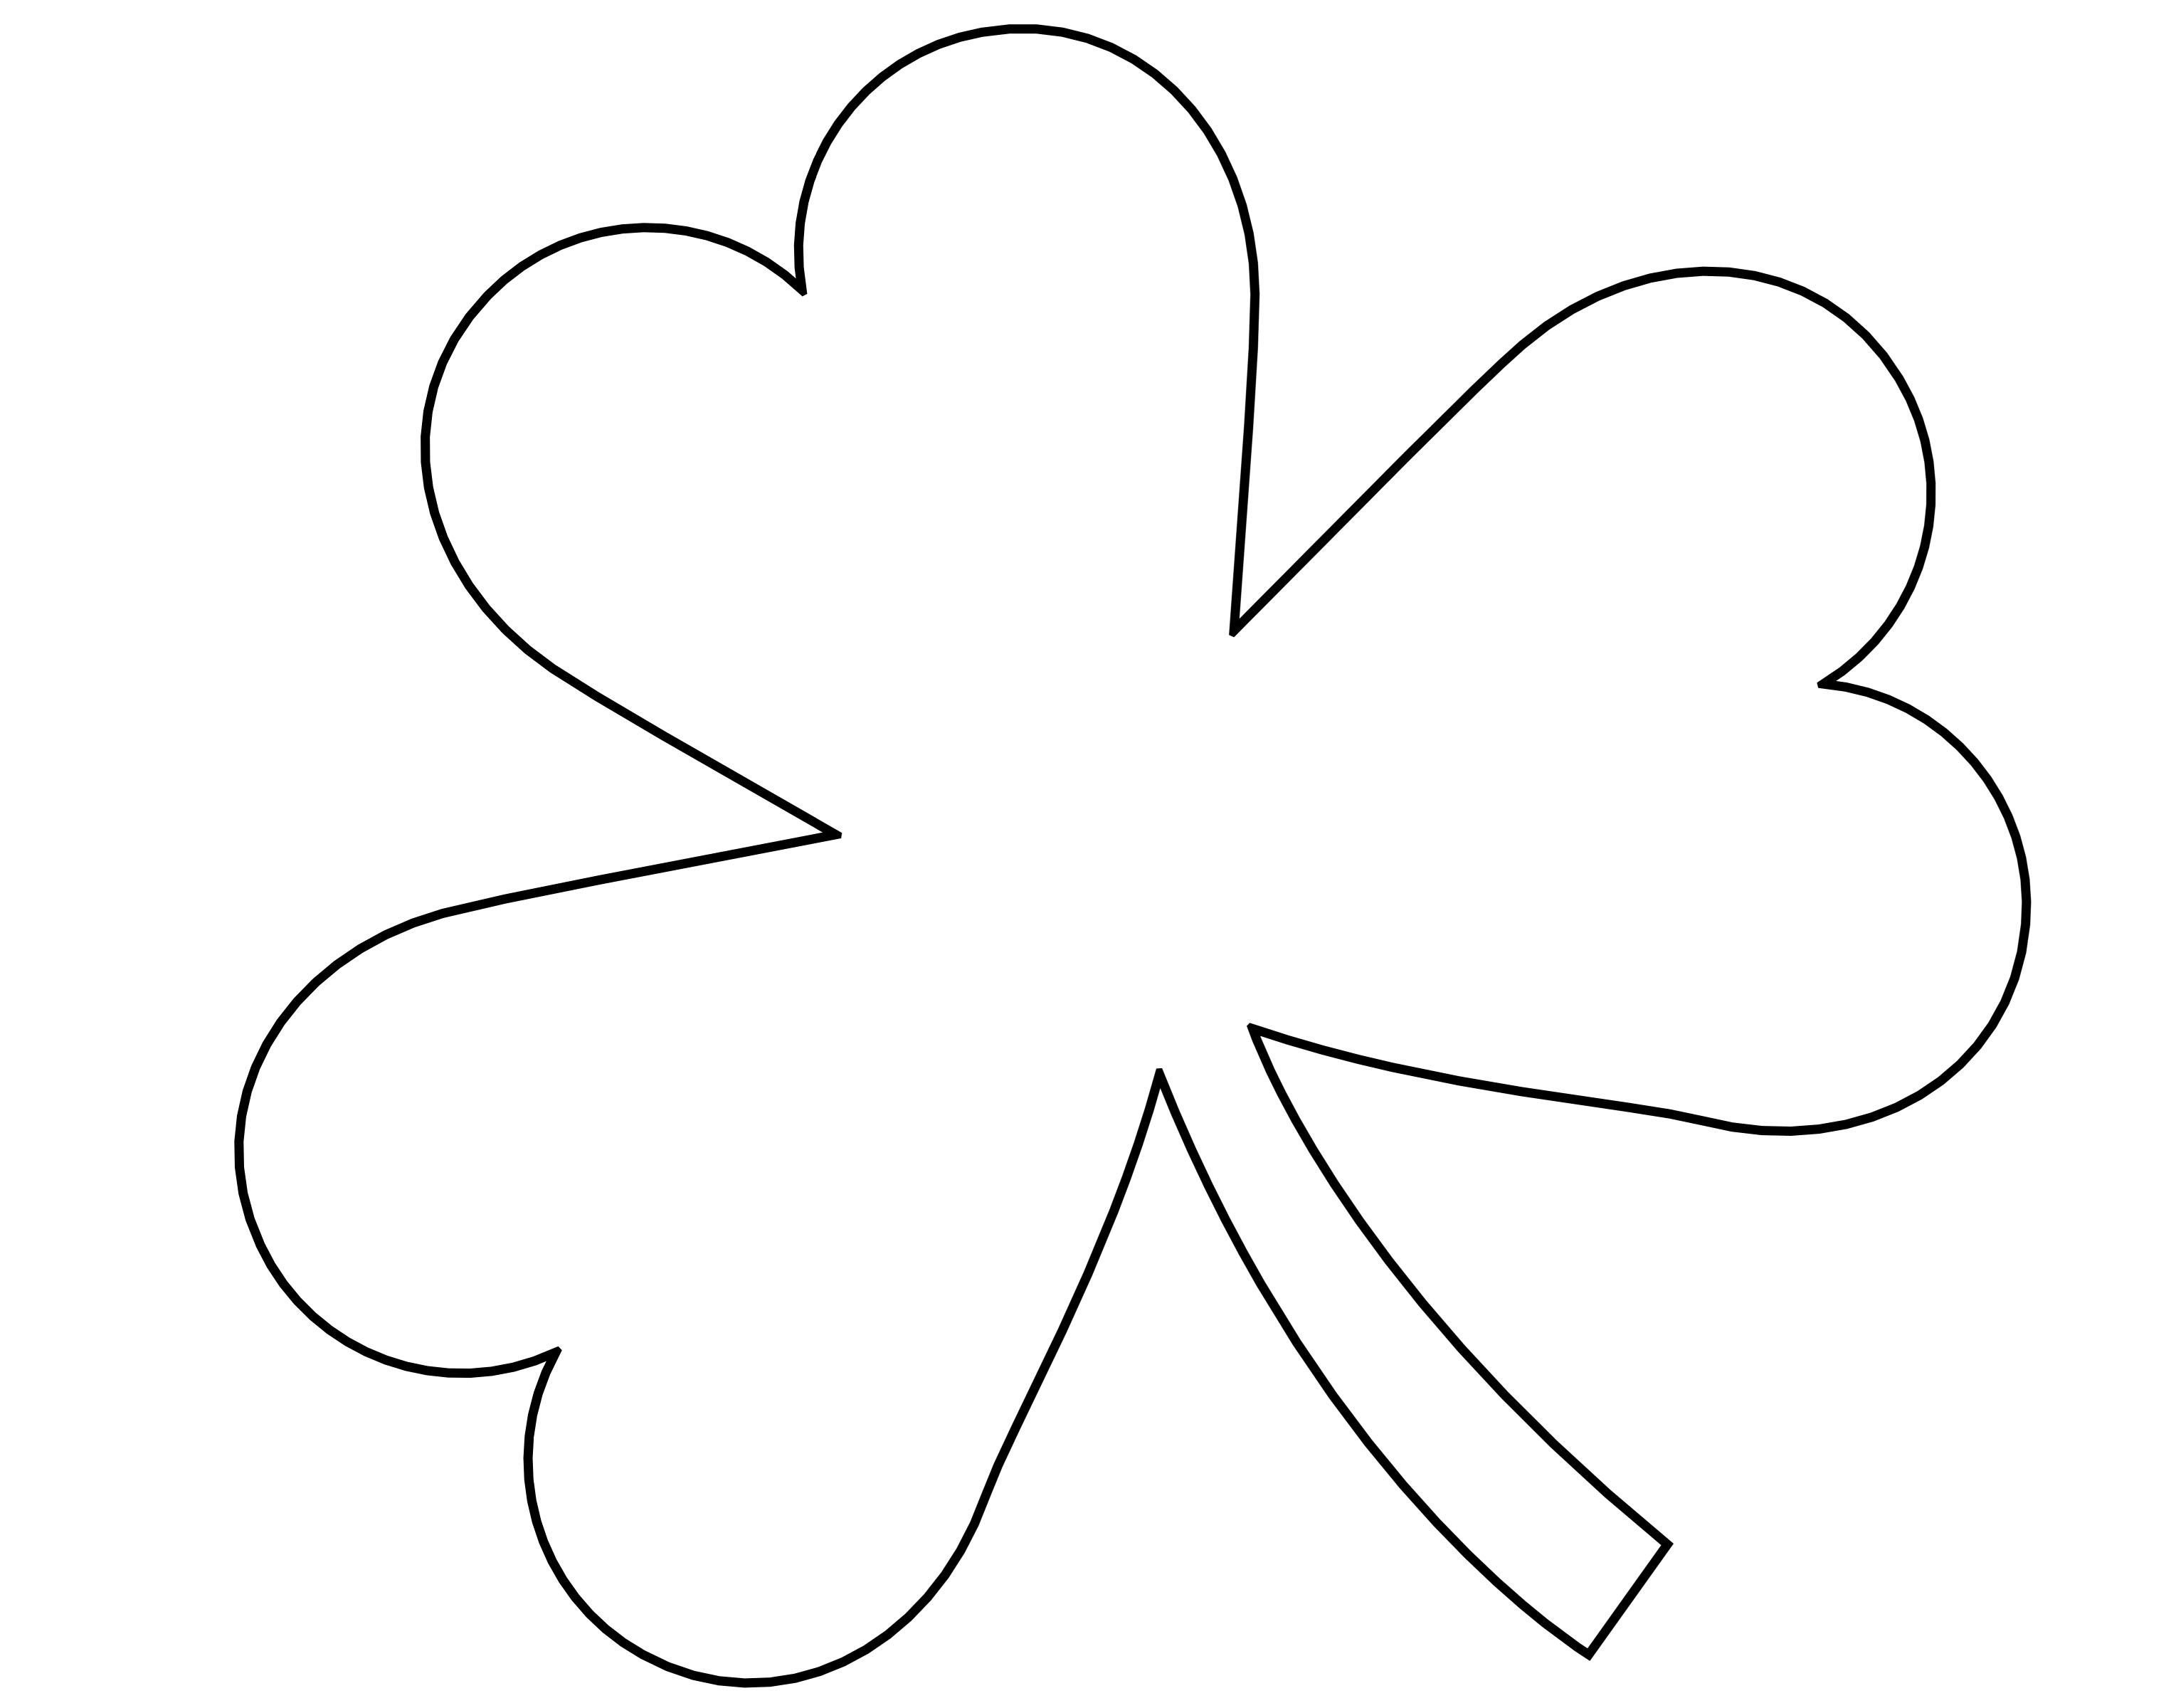 Shamrock Template Free Printable 5 Best Of Four Leaf Shamrock Template Printable